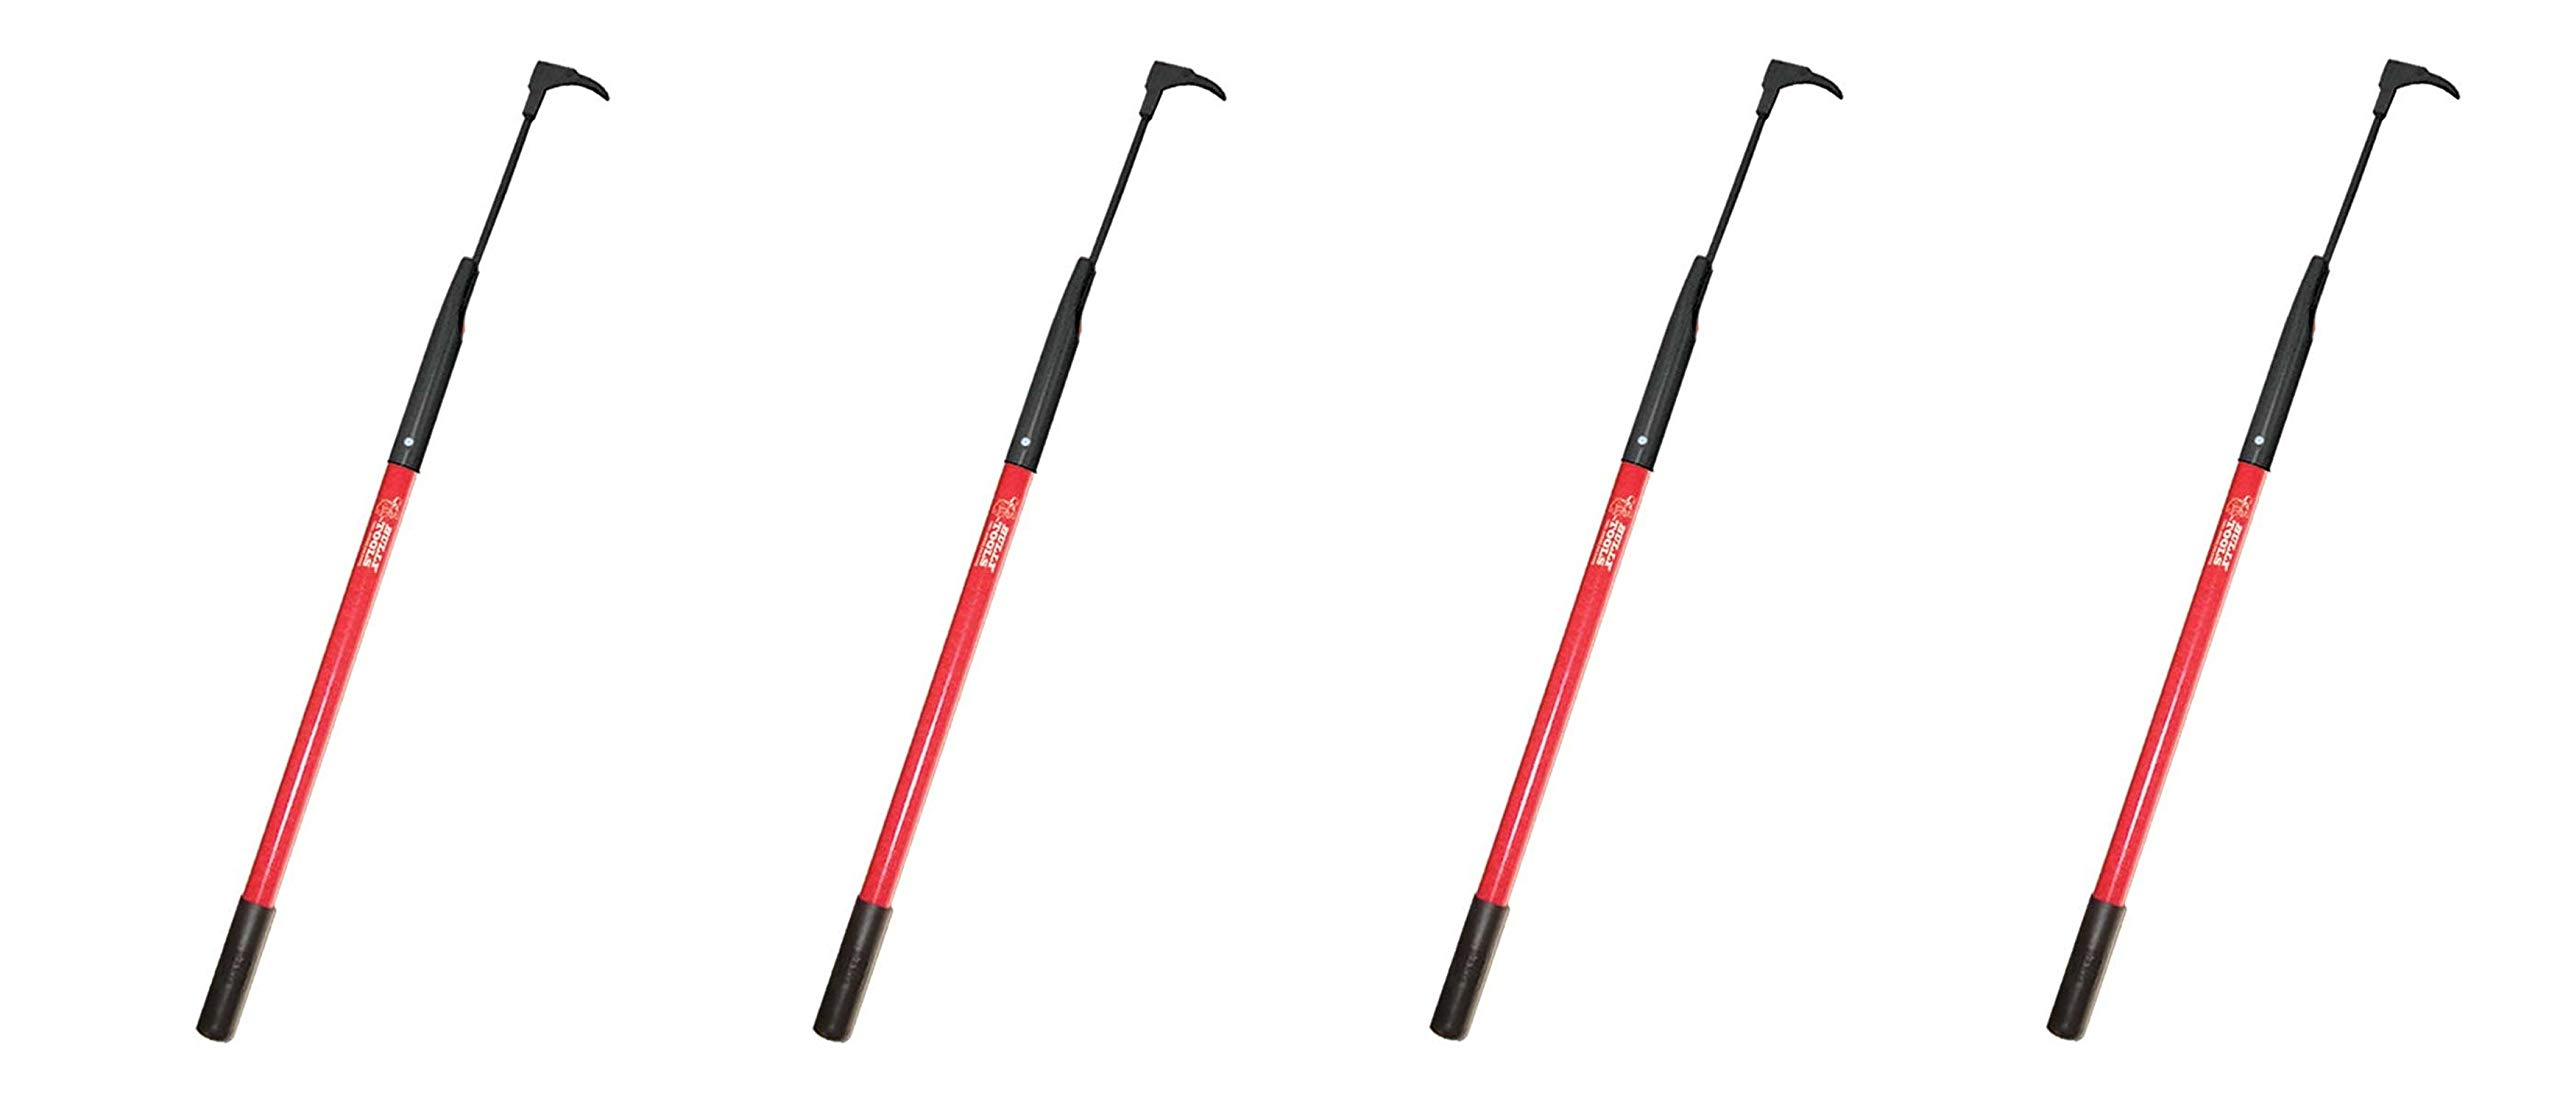 Bully Tools 92395 7-Gauge 3-Inch Bean Hook/Paver Weeder with Dual-Sided Blade (Pack of 4)